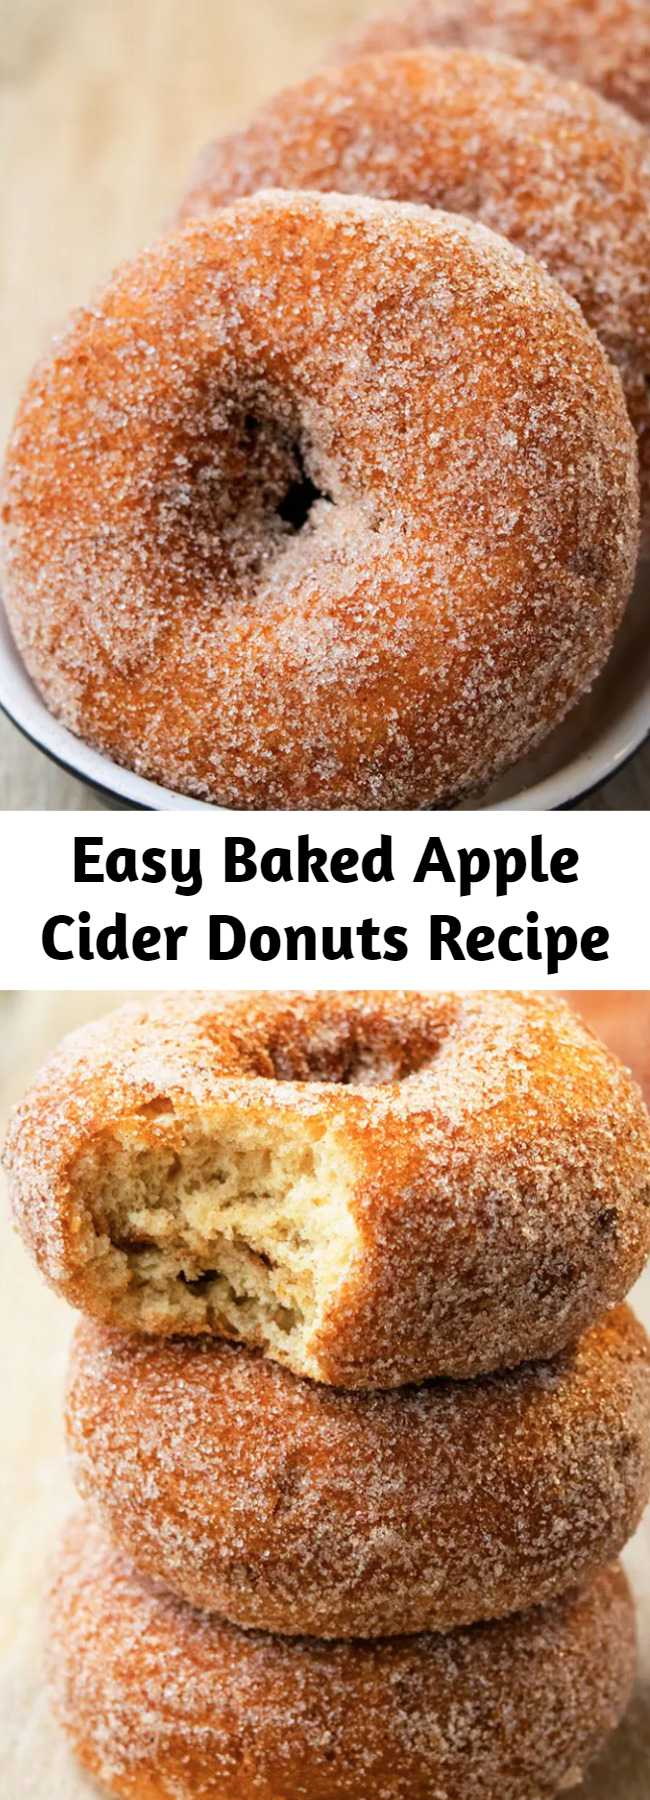 Easy Baked Apple Cider Donuts Recipe - Easy, old fashioned, baked donuts, homemade with simple ingredients in about 30 minutes. Coated in spiced cinnamon sugar. Soft, moist, tender and cake-like! Can also make donut holes. #donuts #apples #baking #breakfast #dessert #fall #thanksgiving